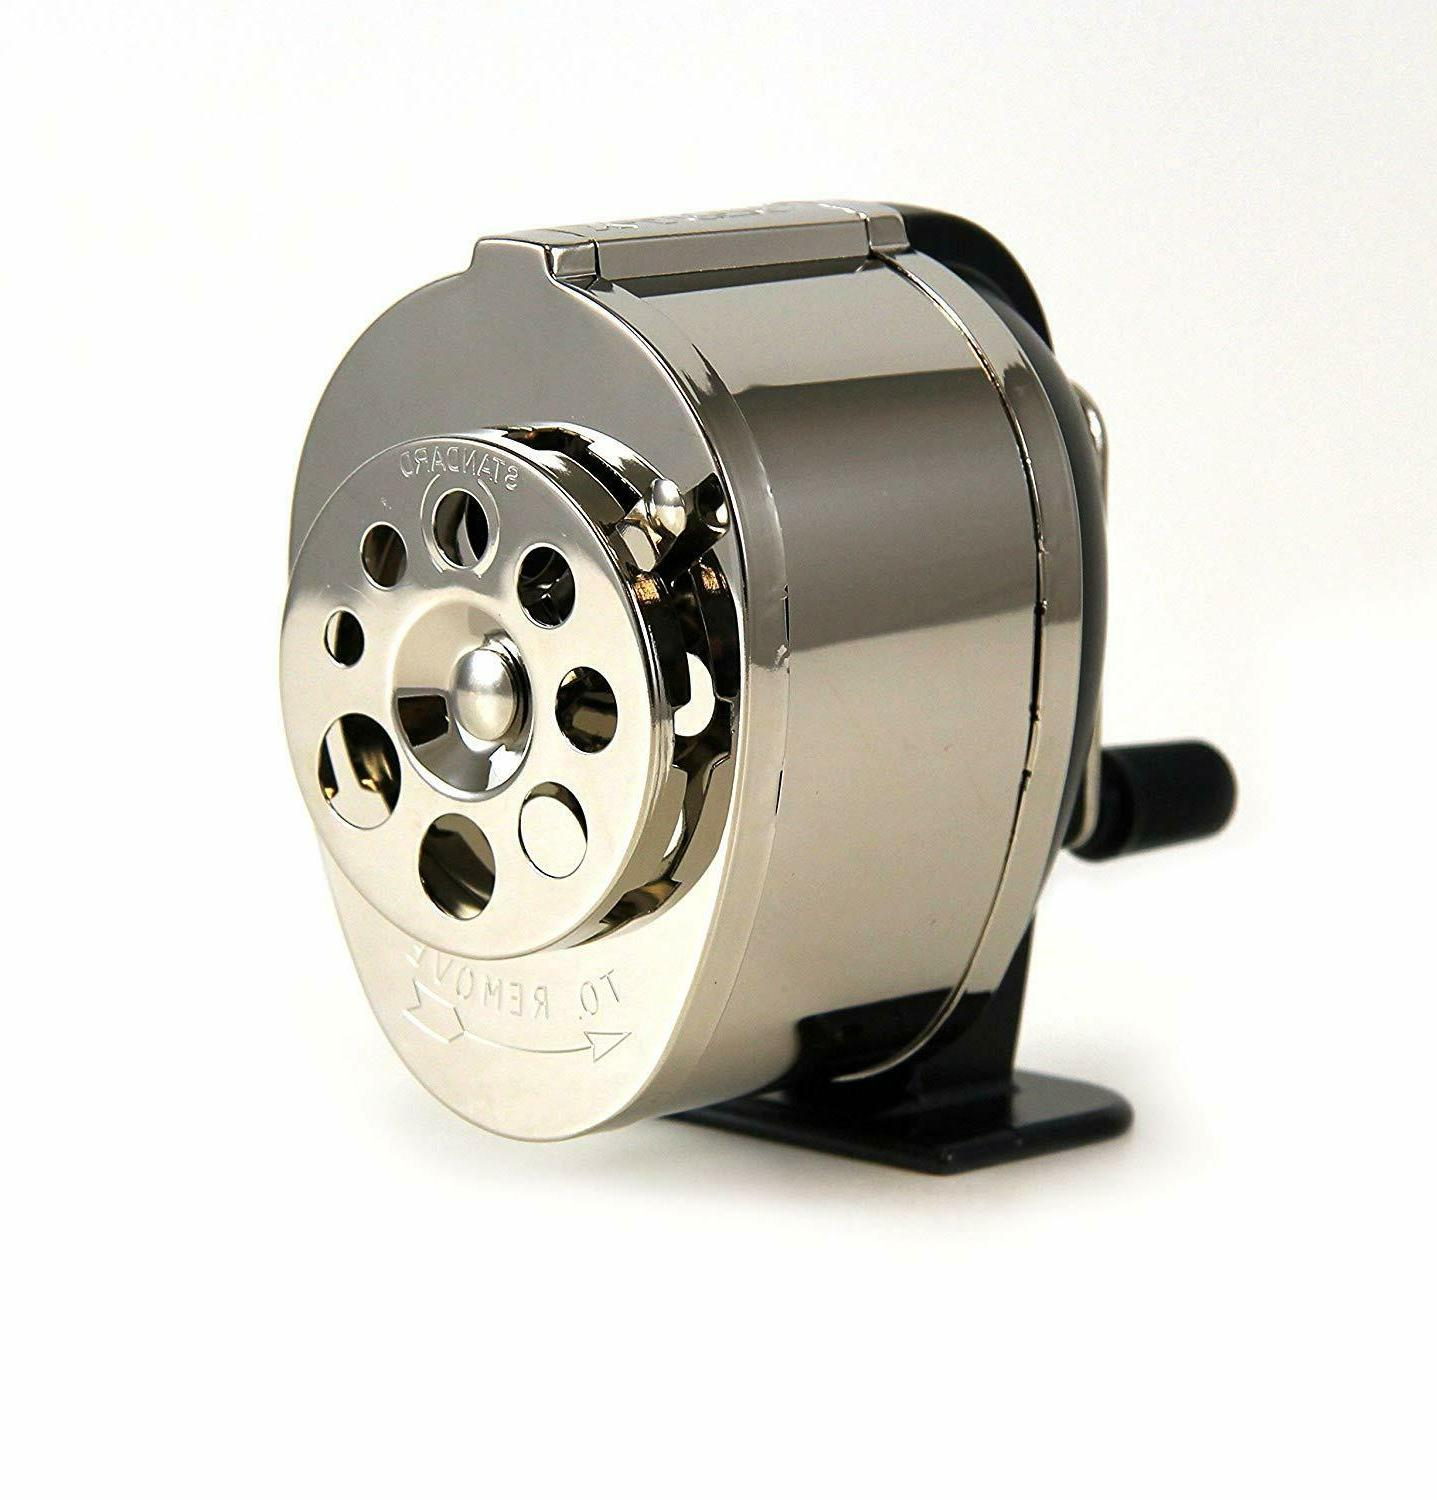 Pencil Sharpener Vintage Metal Mountable on wall or table